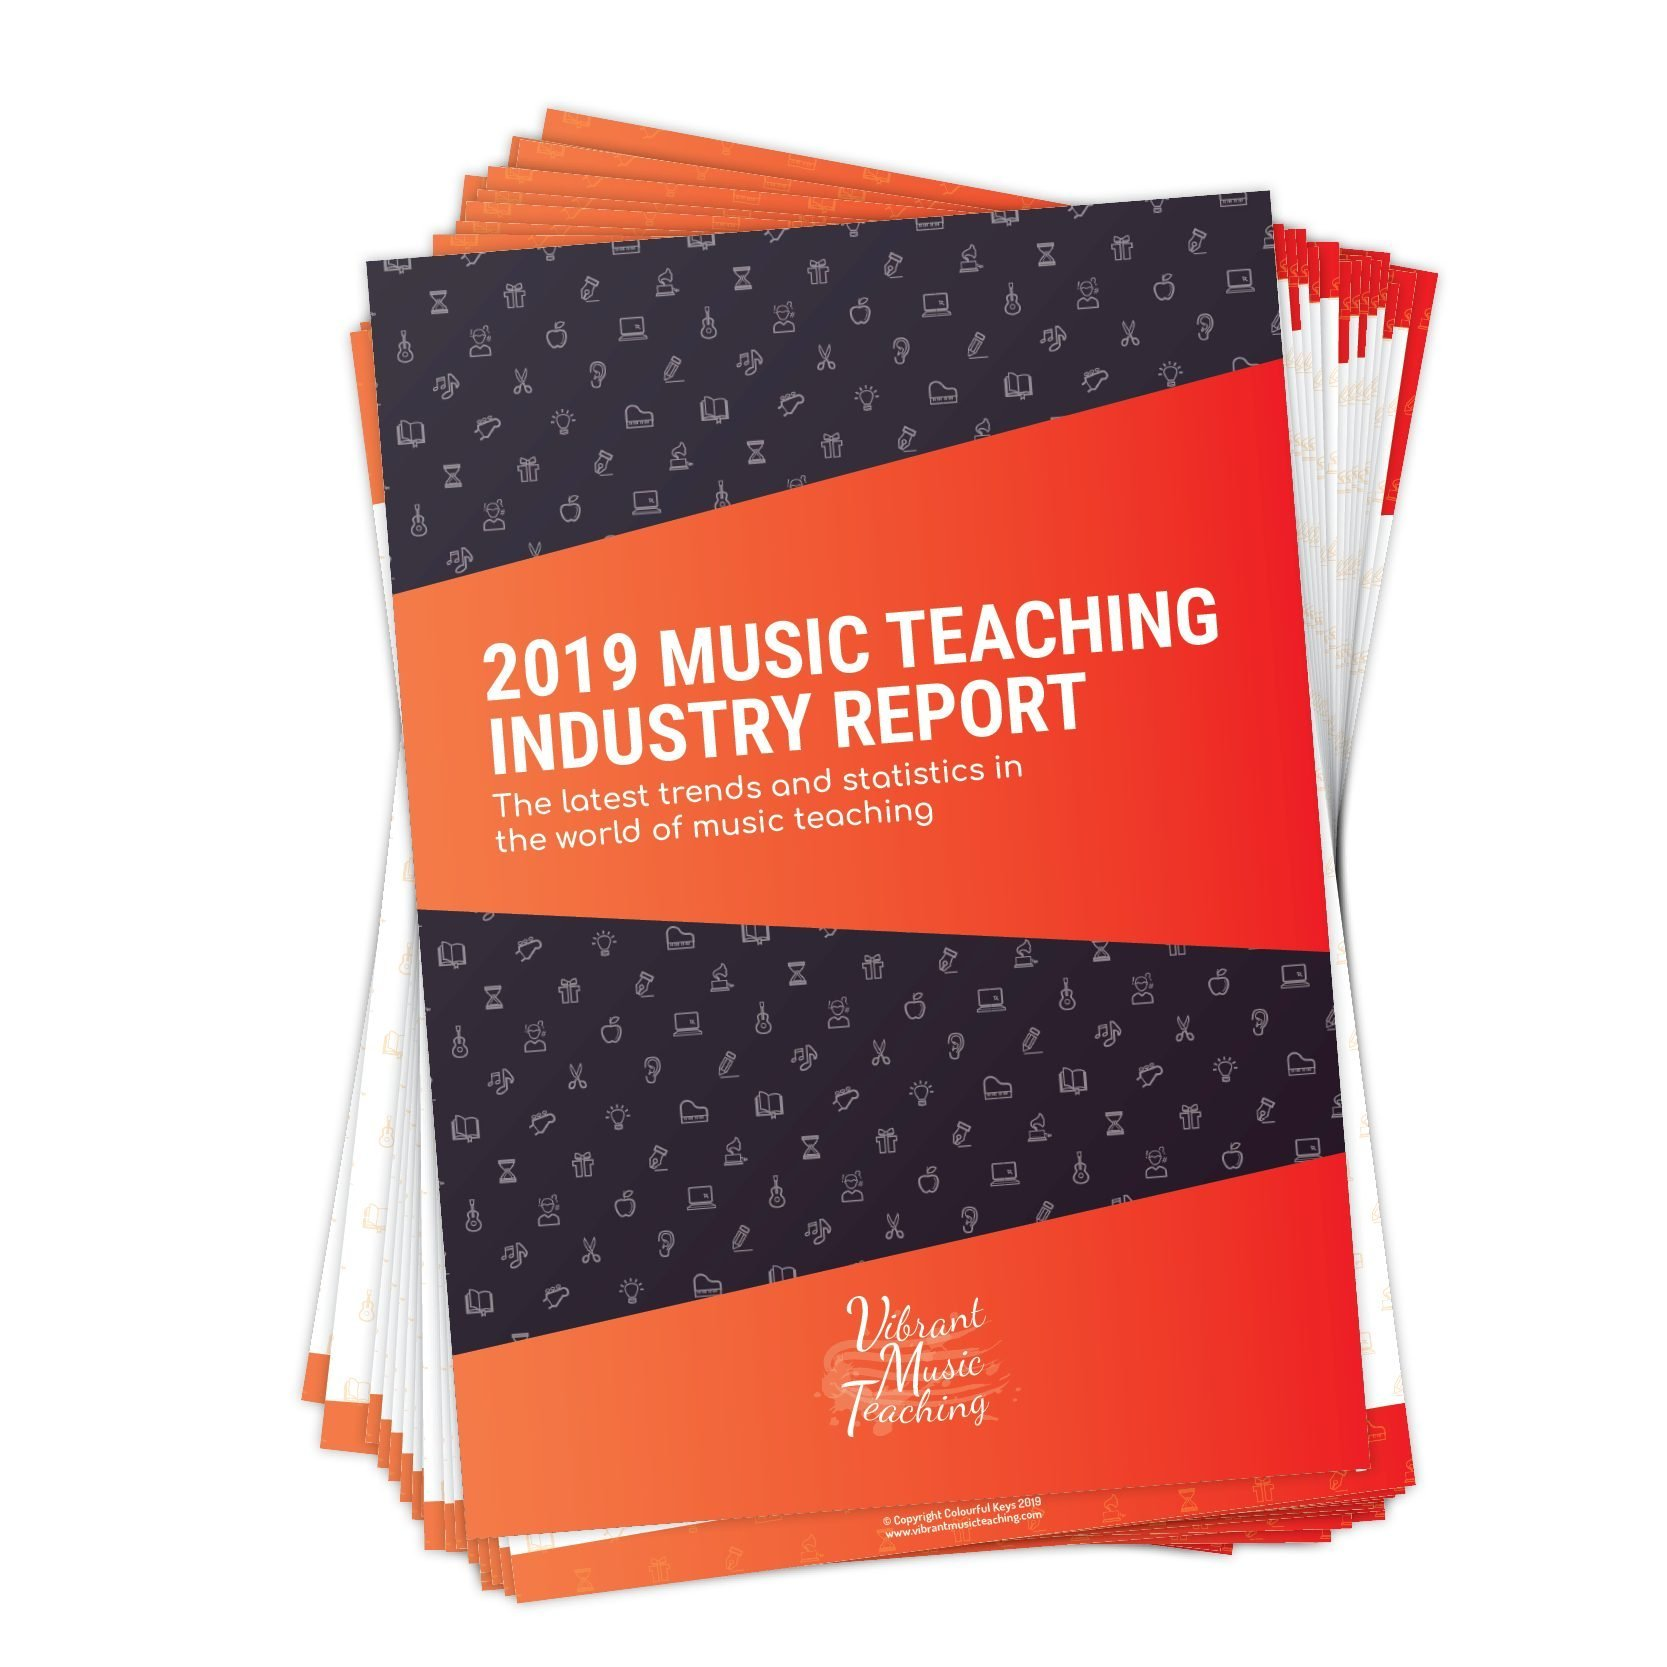 Vibrant Music Teaching 2019 Industry Report preview